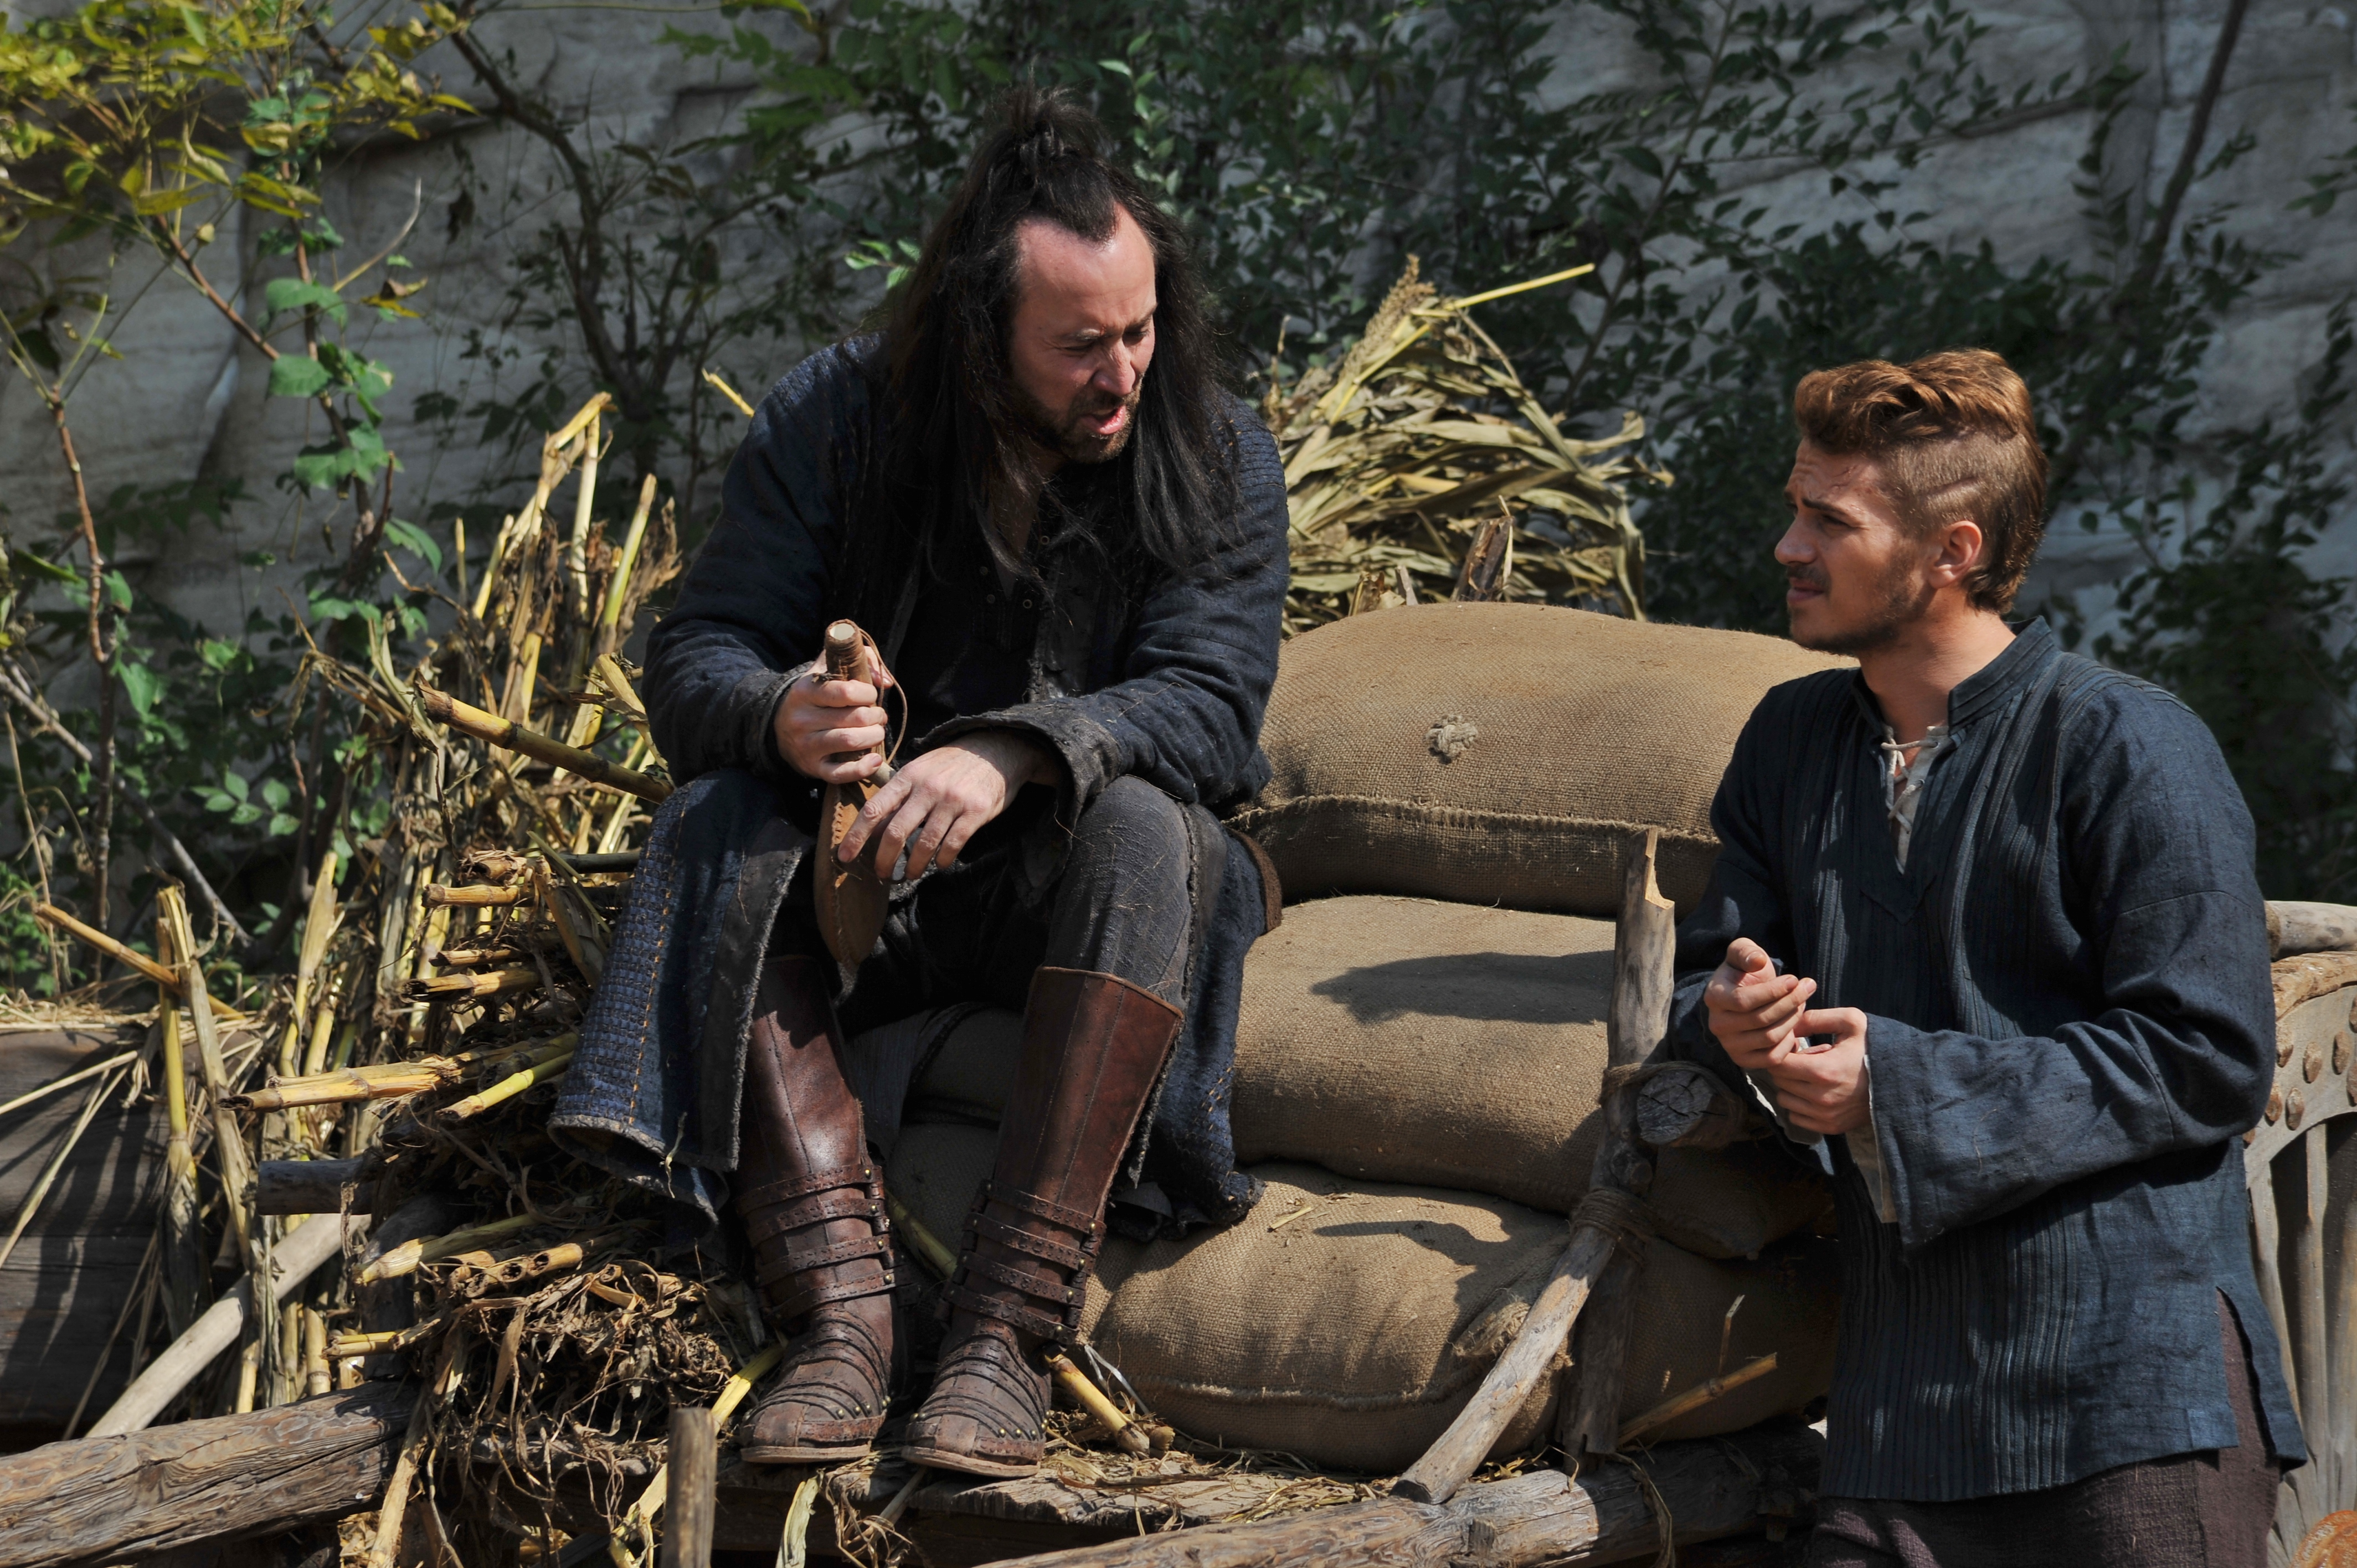 Outcast: Exclusive Still #1